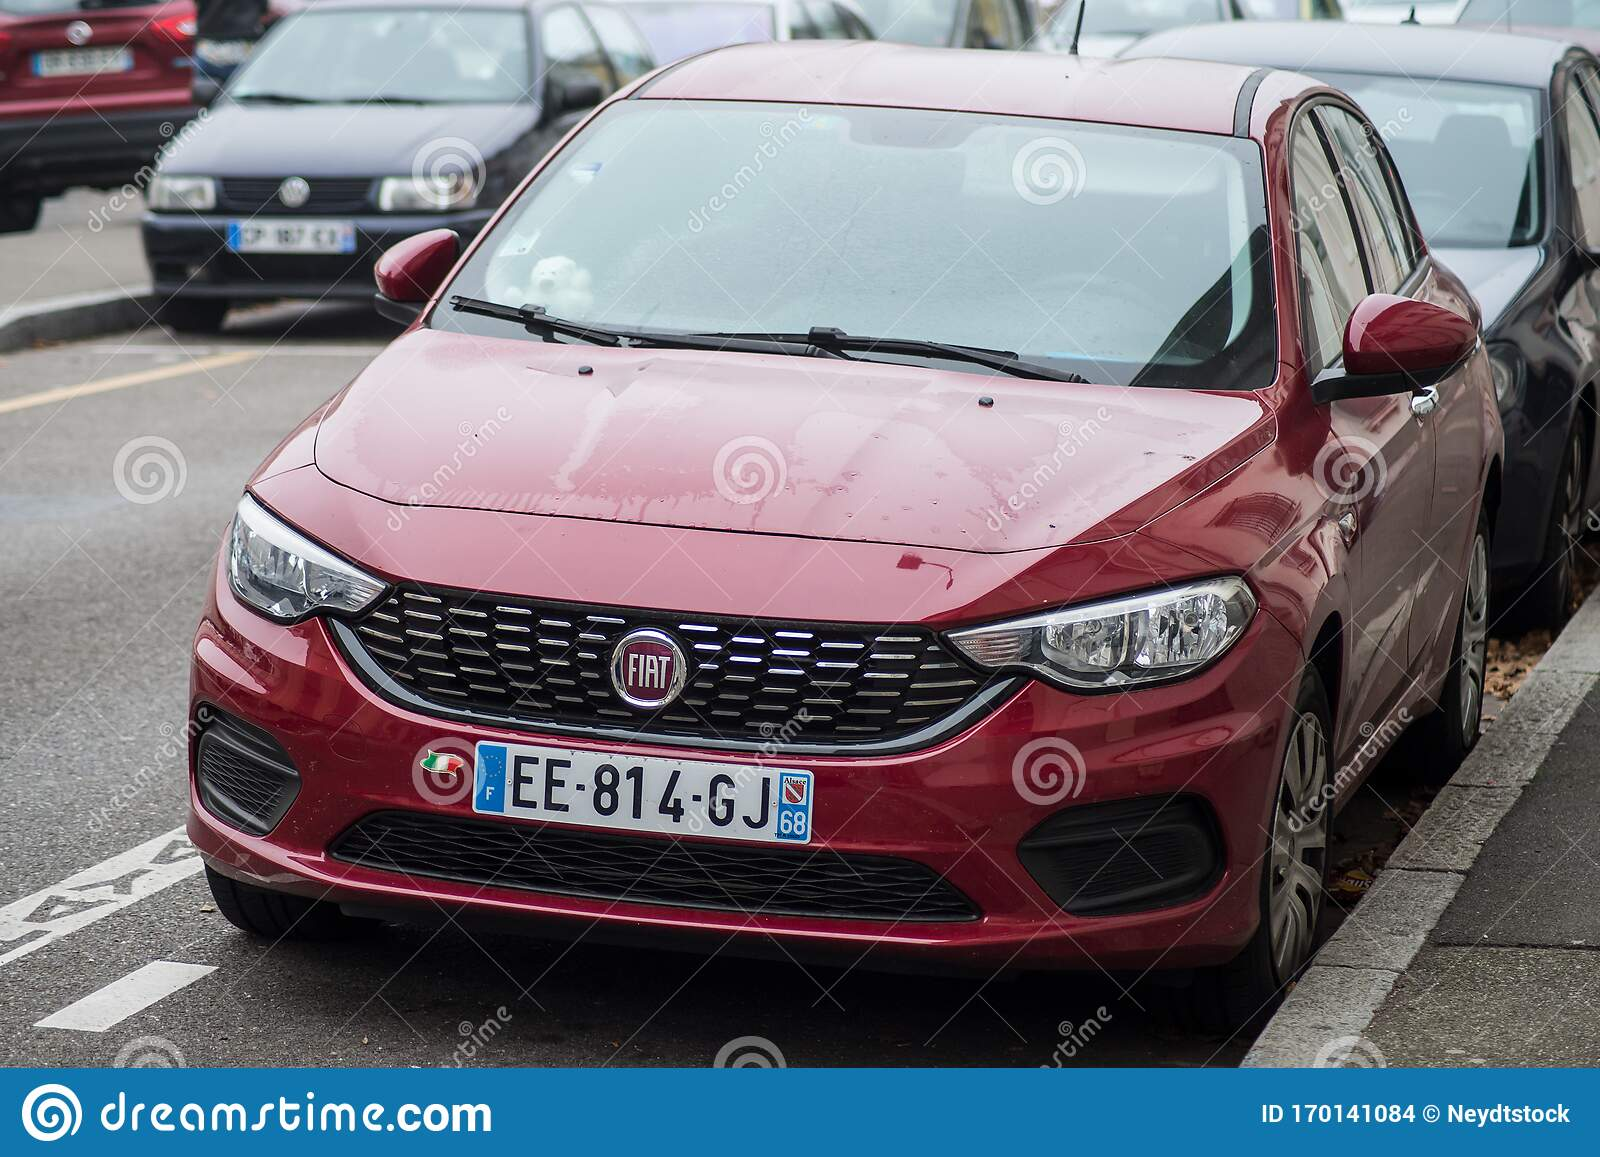 front-view-red-fiat-tipo-parked-street-mulhouse-france-january-170141084.jpg